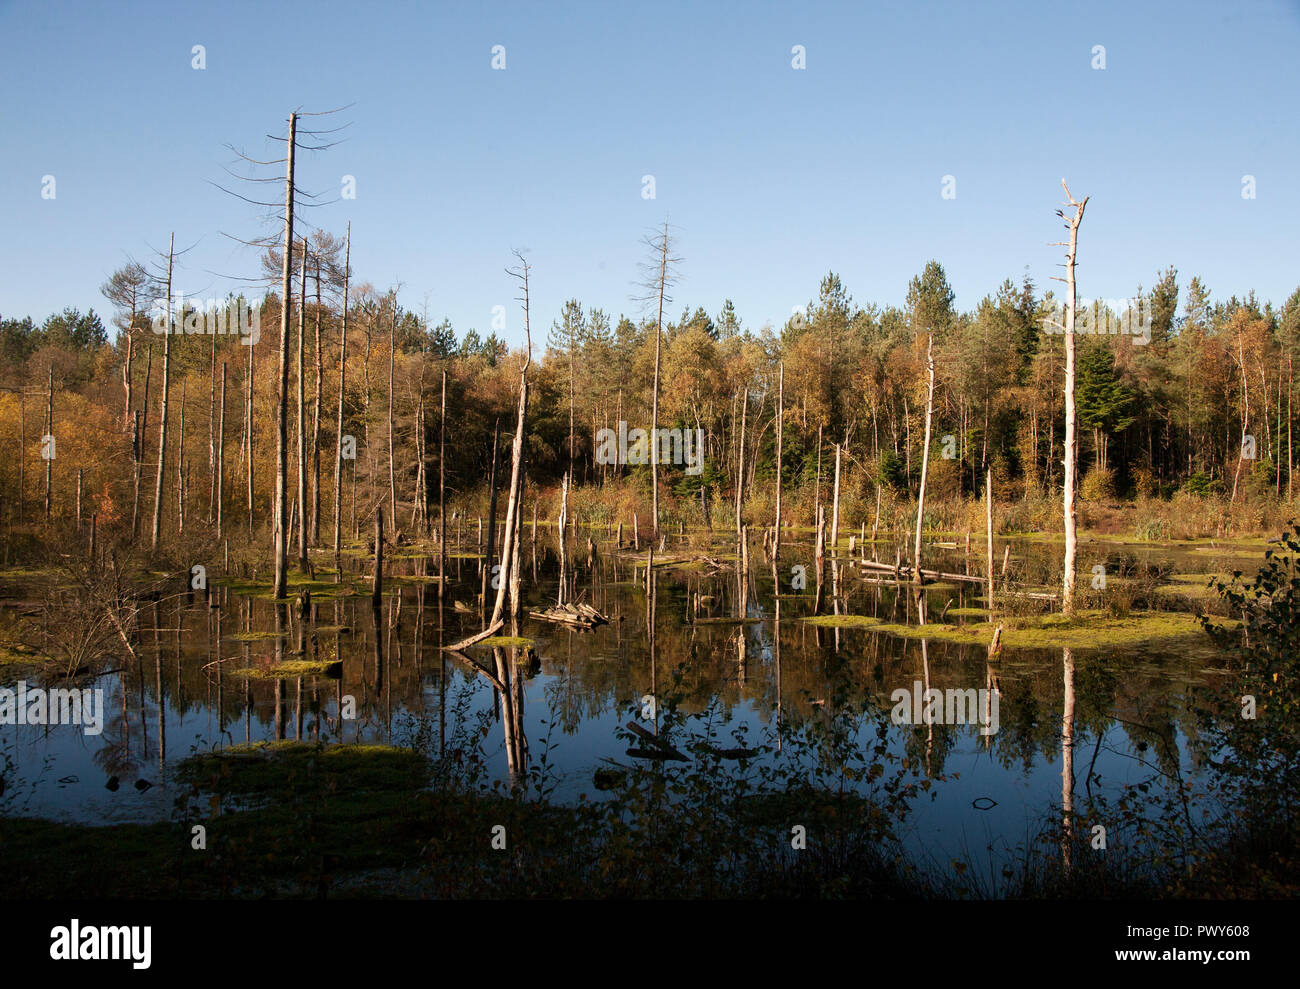 DELAMERE, UK. 18 October 2018. Autumn shows its colours on a mild sunny day at Delamere Forest, north-west England. Premospix/Alamy Live News - Stock Image